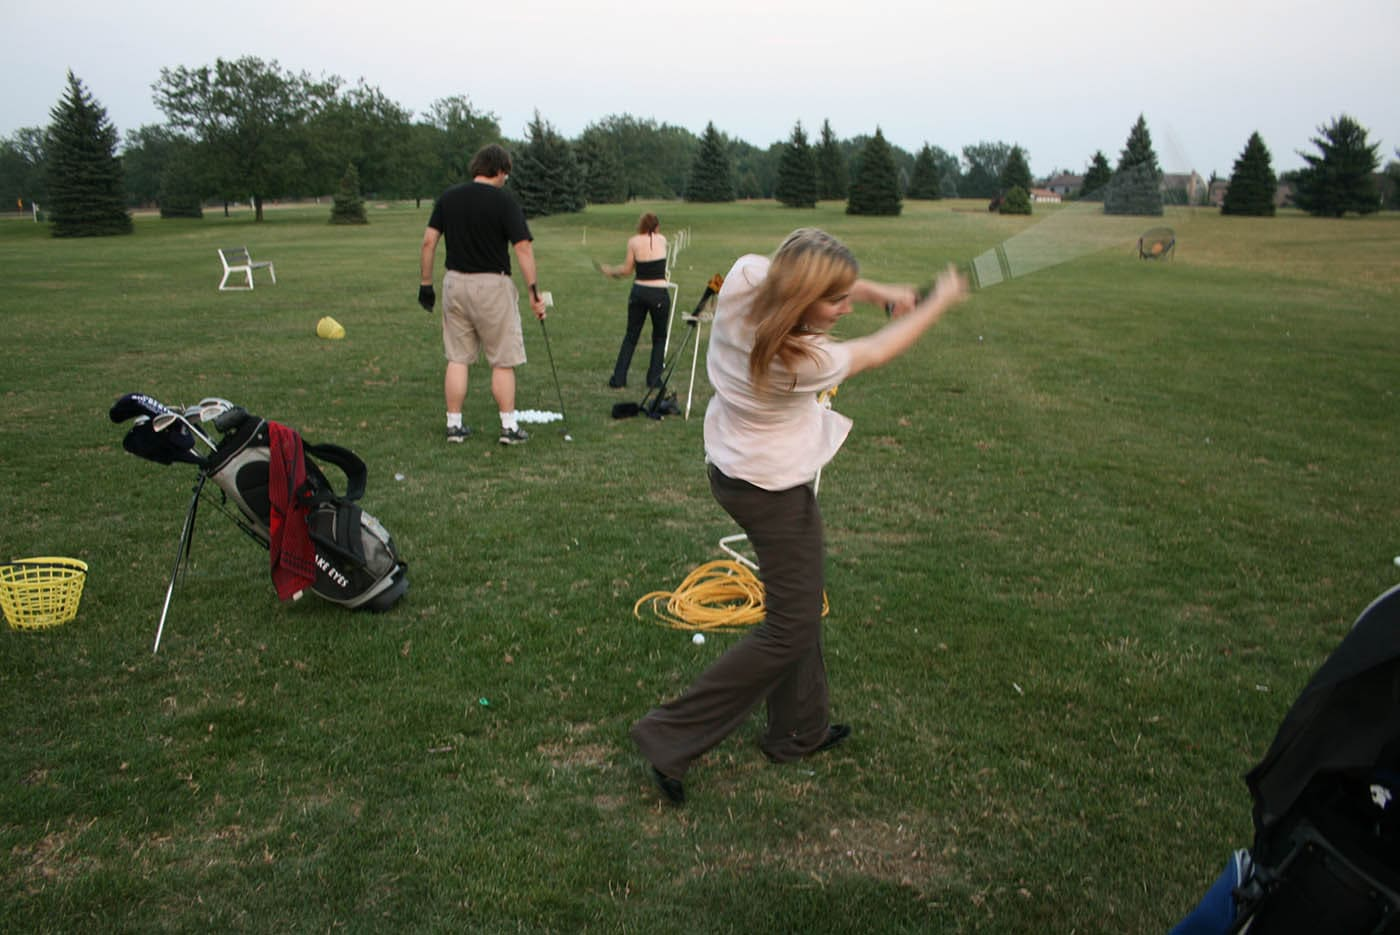 Learning to golf at the driving range.